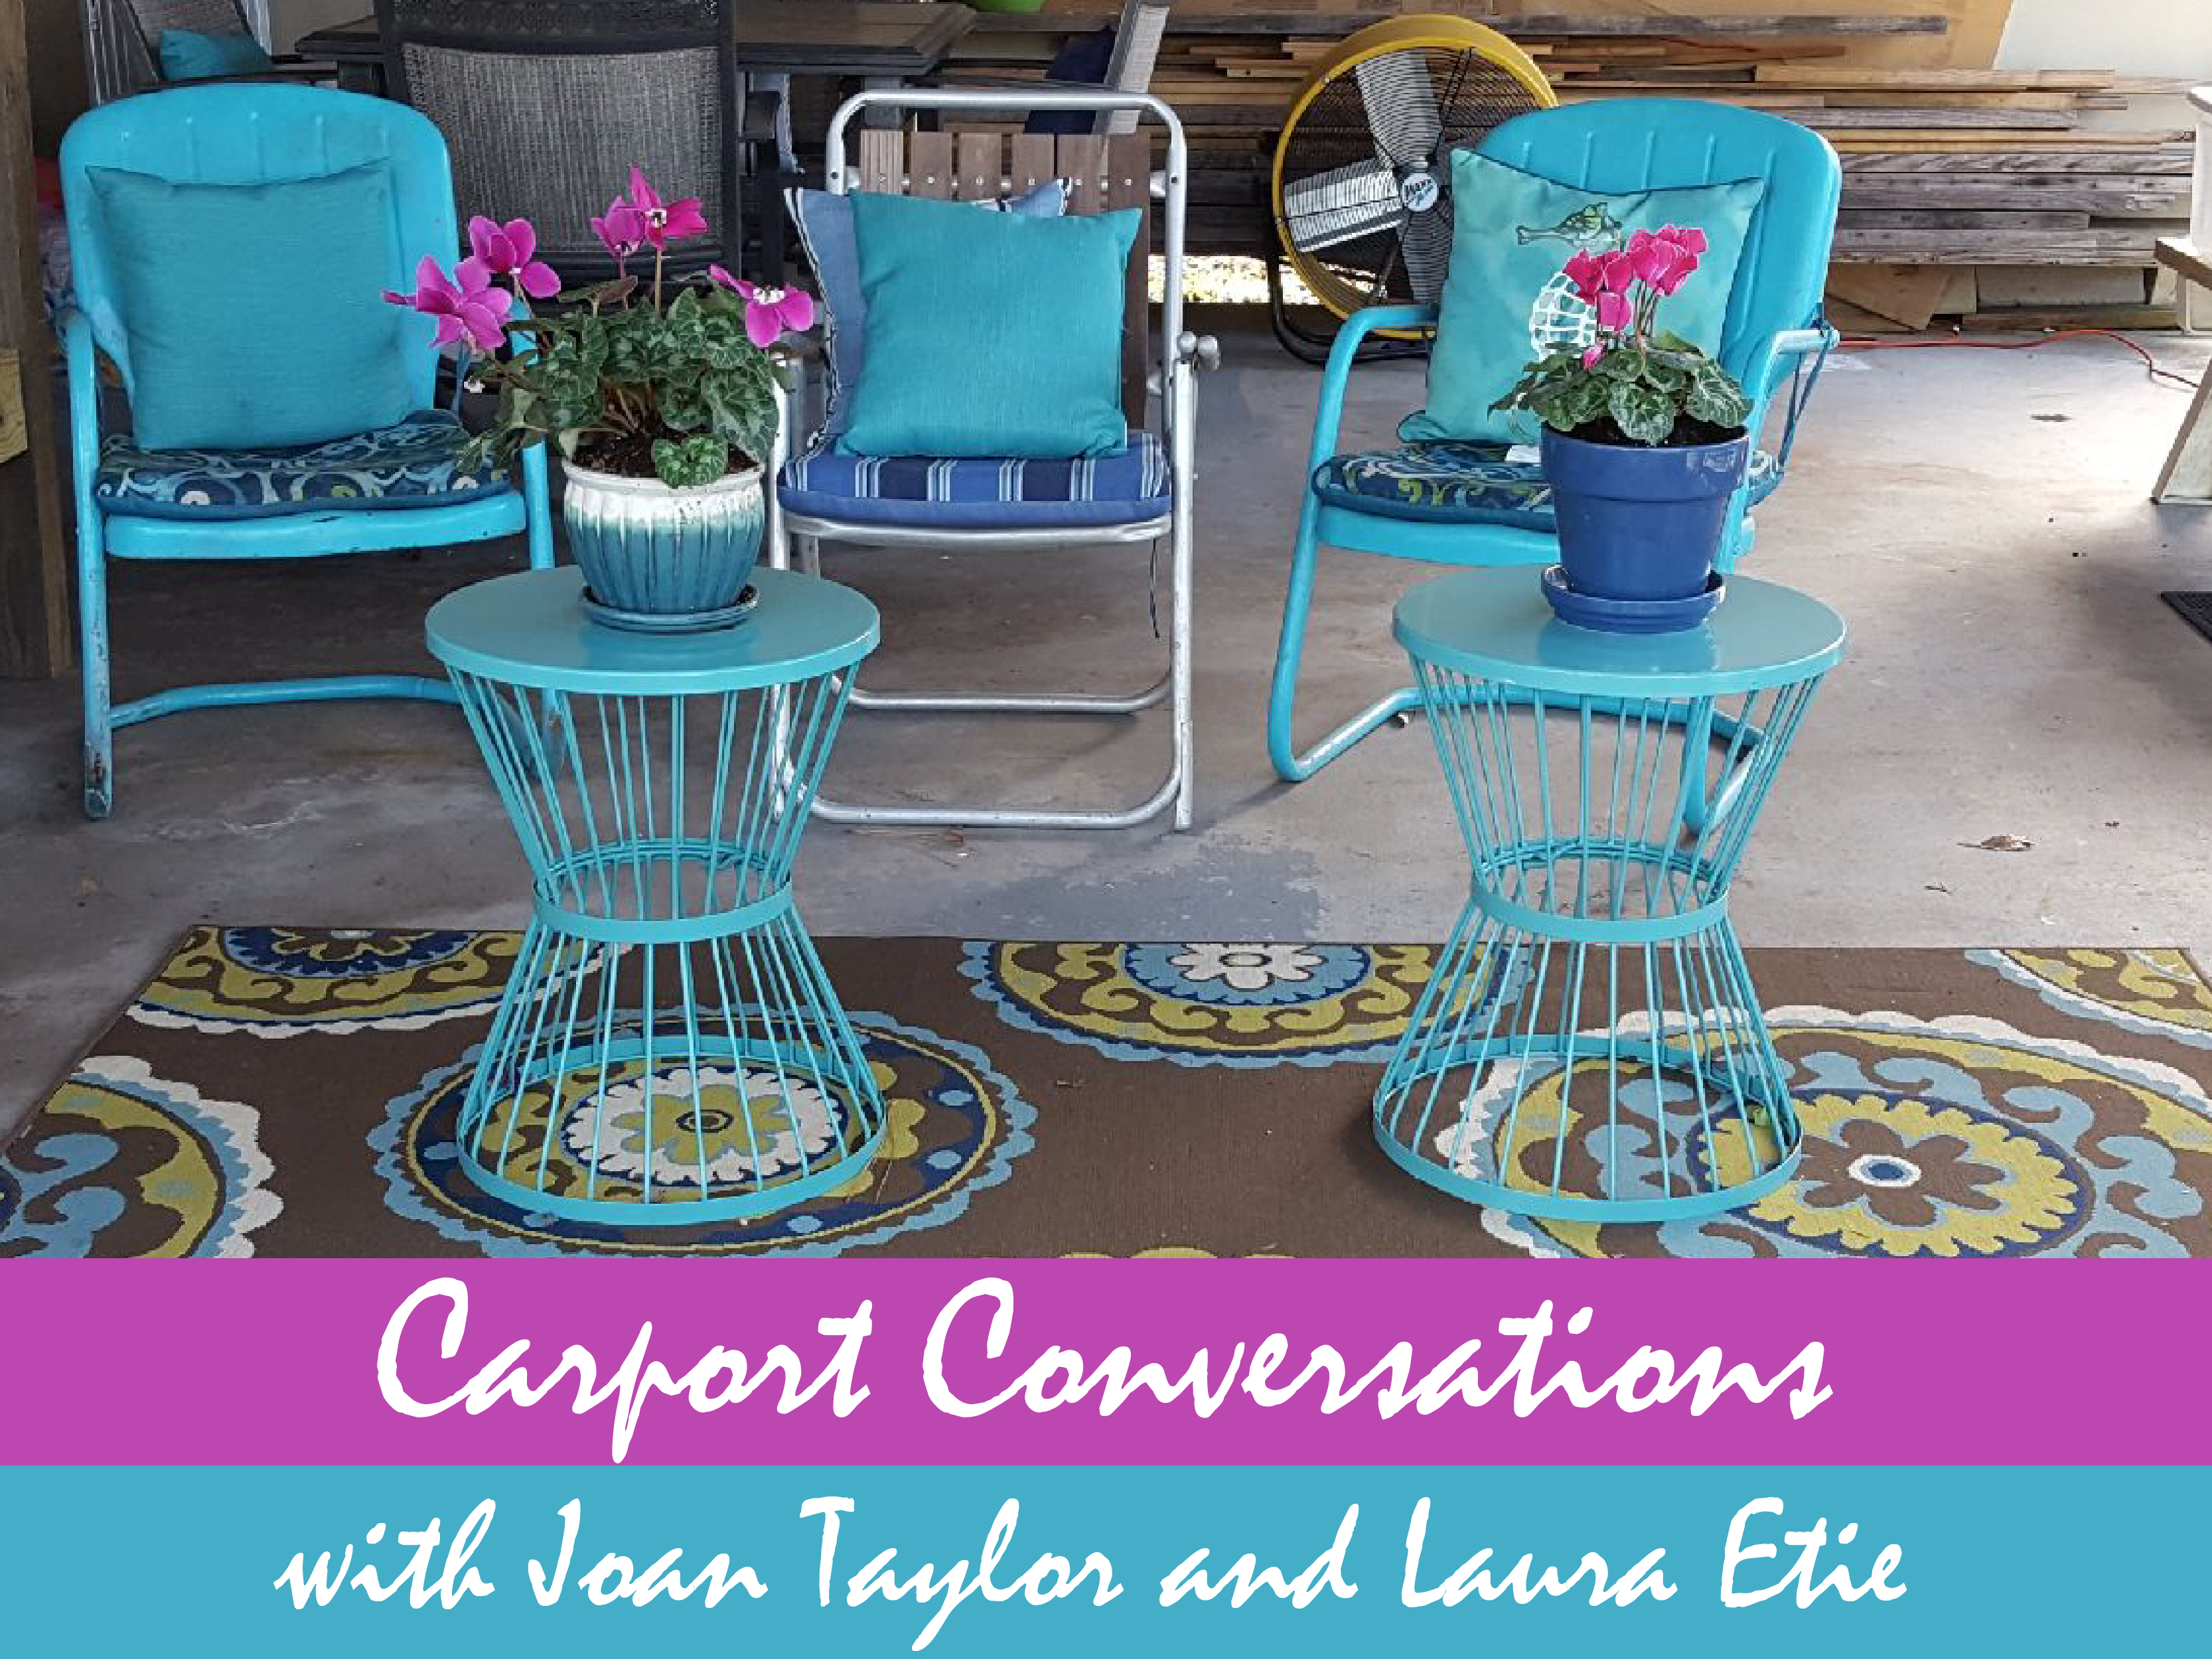 carportconversations-01 (1)